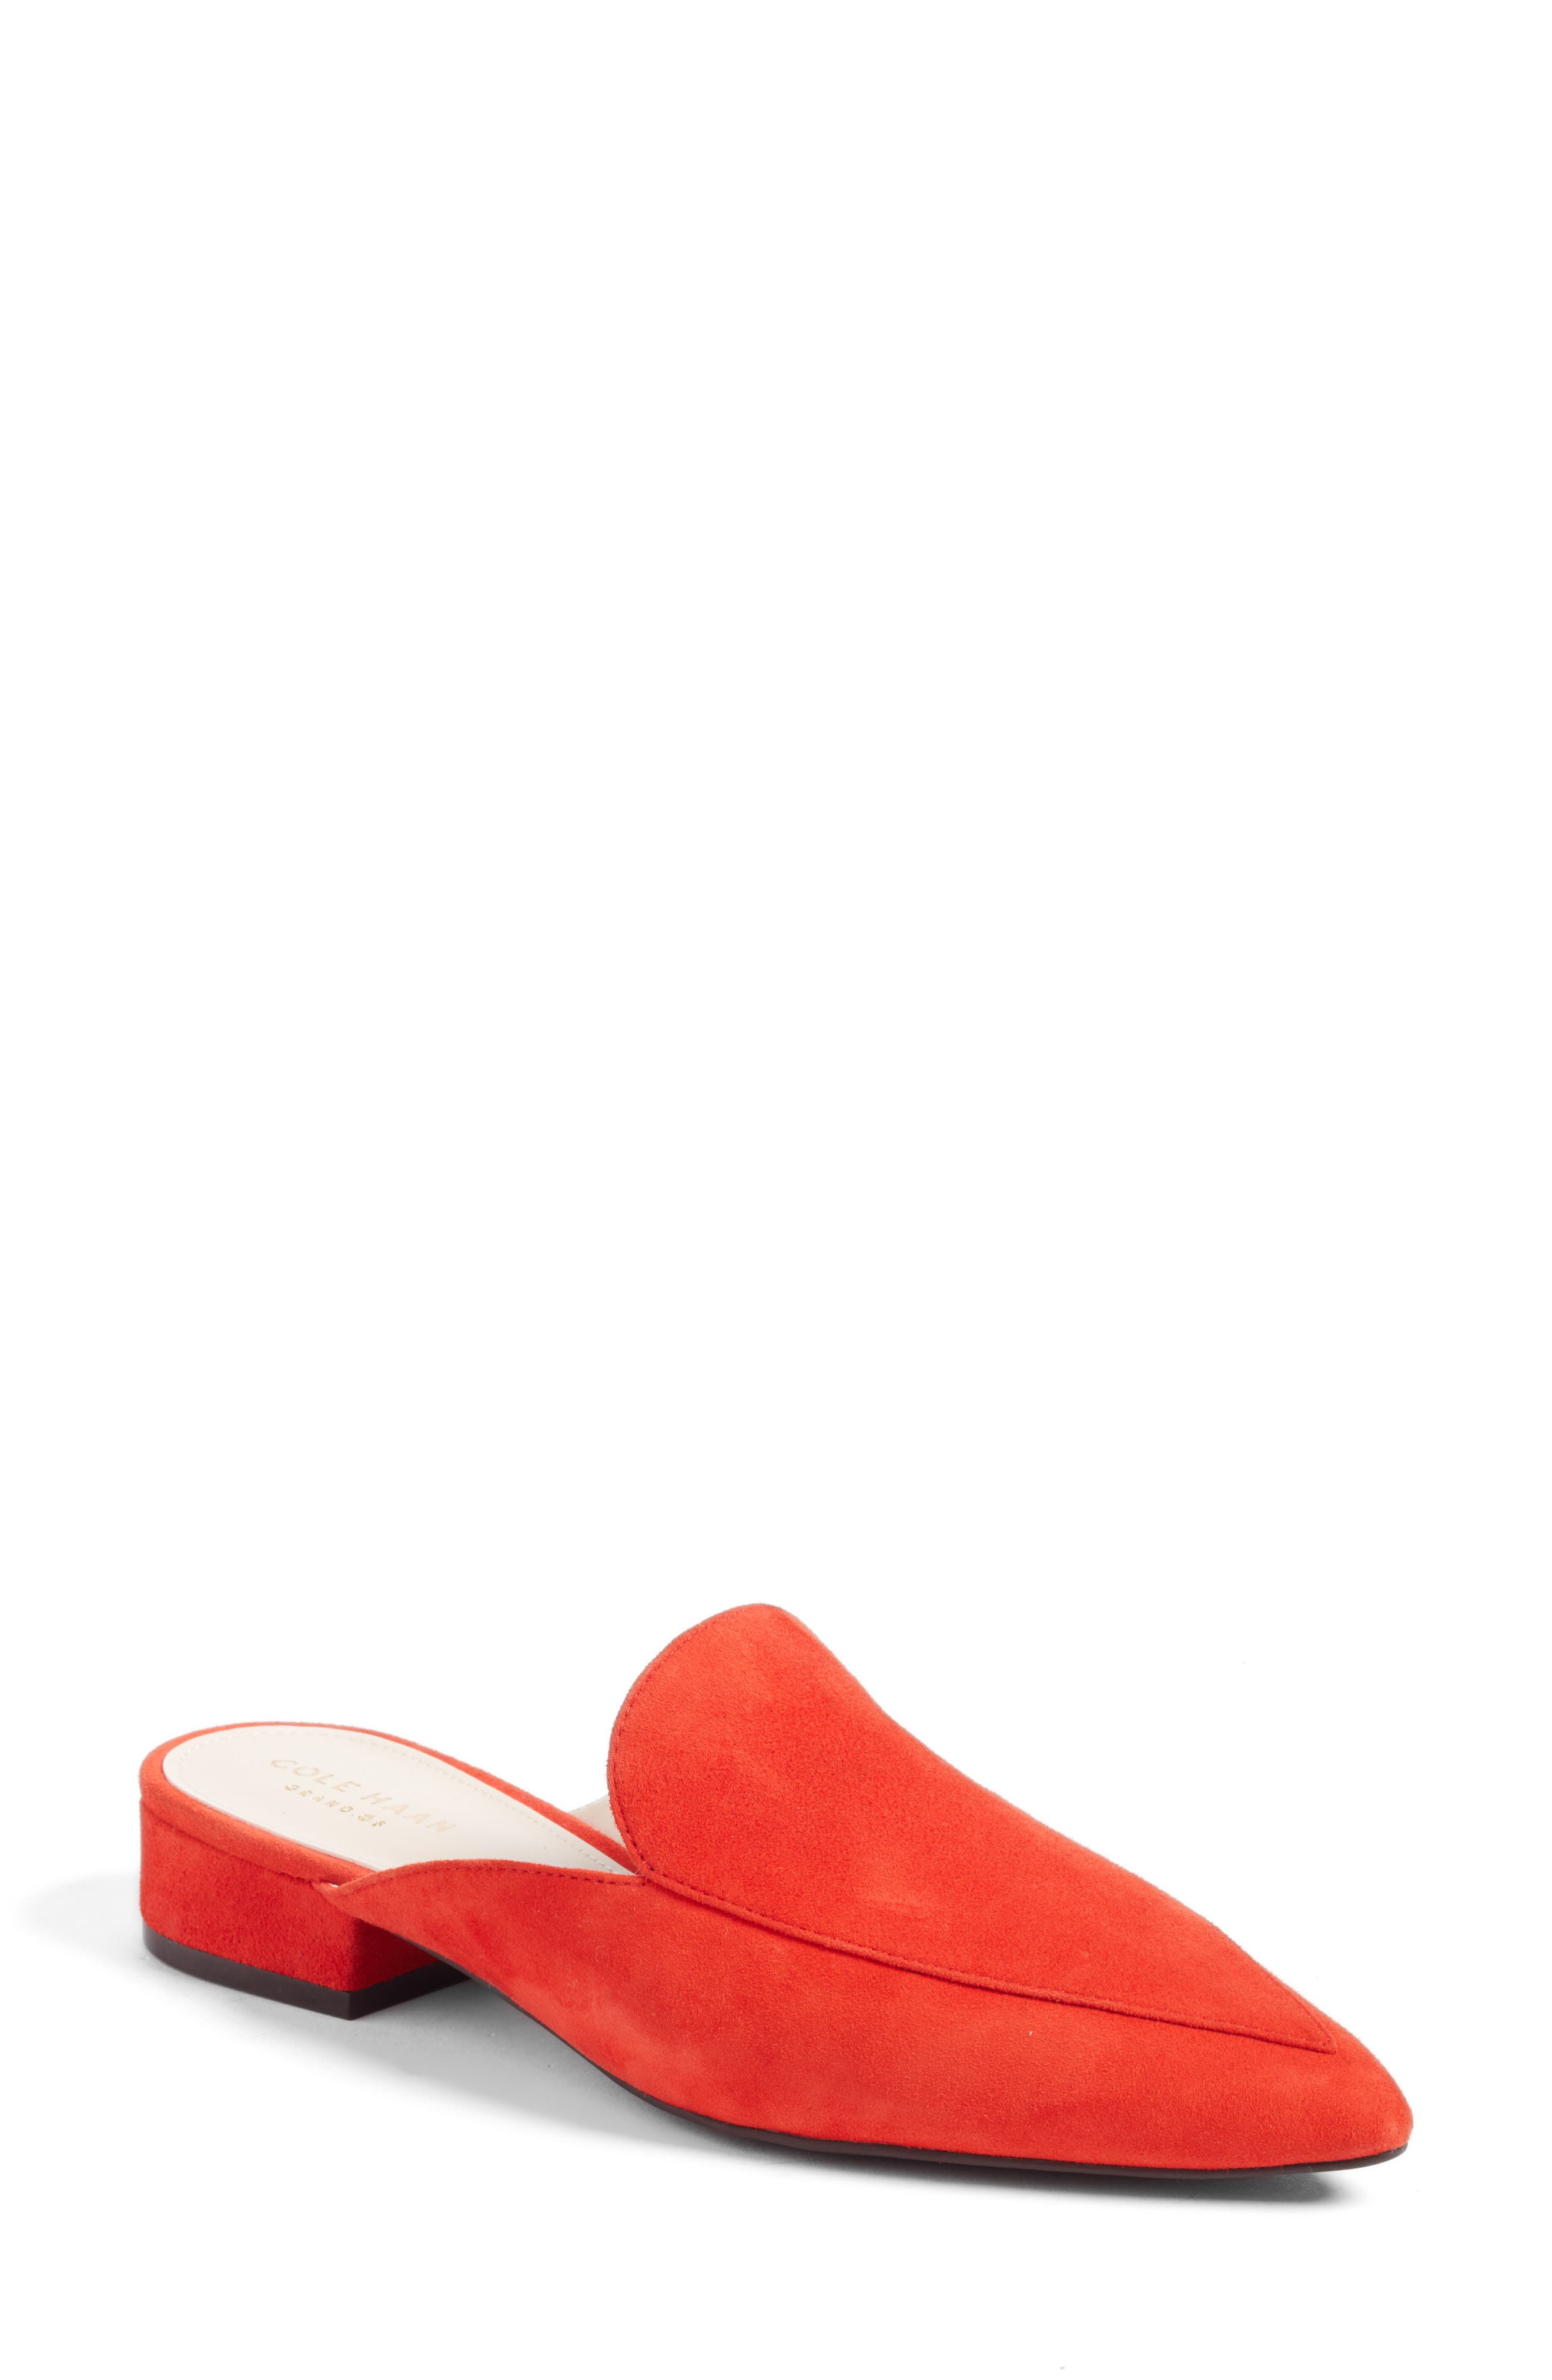 Piper Loafer Mule,                             Main thumbnail 1, color,                             Fiery Red Suede